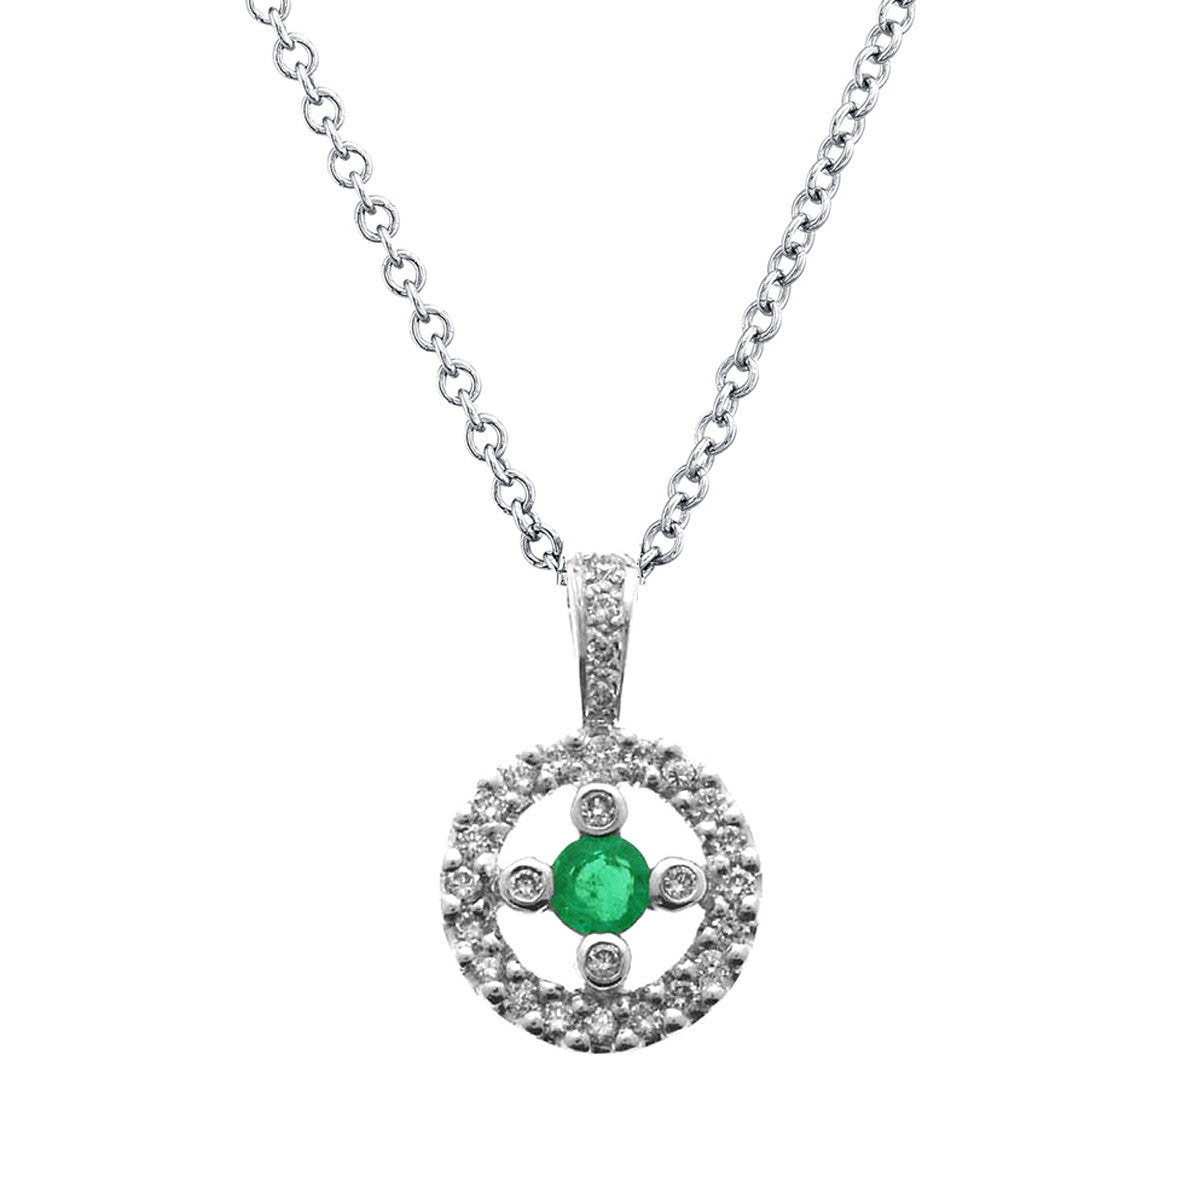 Emerald and diamond circle pendant necklace 18k white gold 027ctw emerald and diamond circle pendant necklace 18k white gold 027ctw aloadofball Images